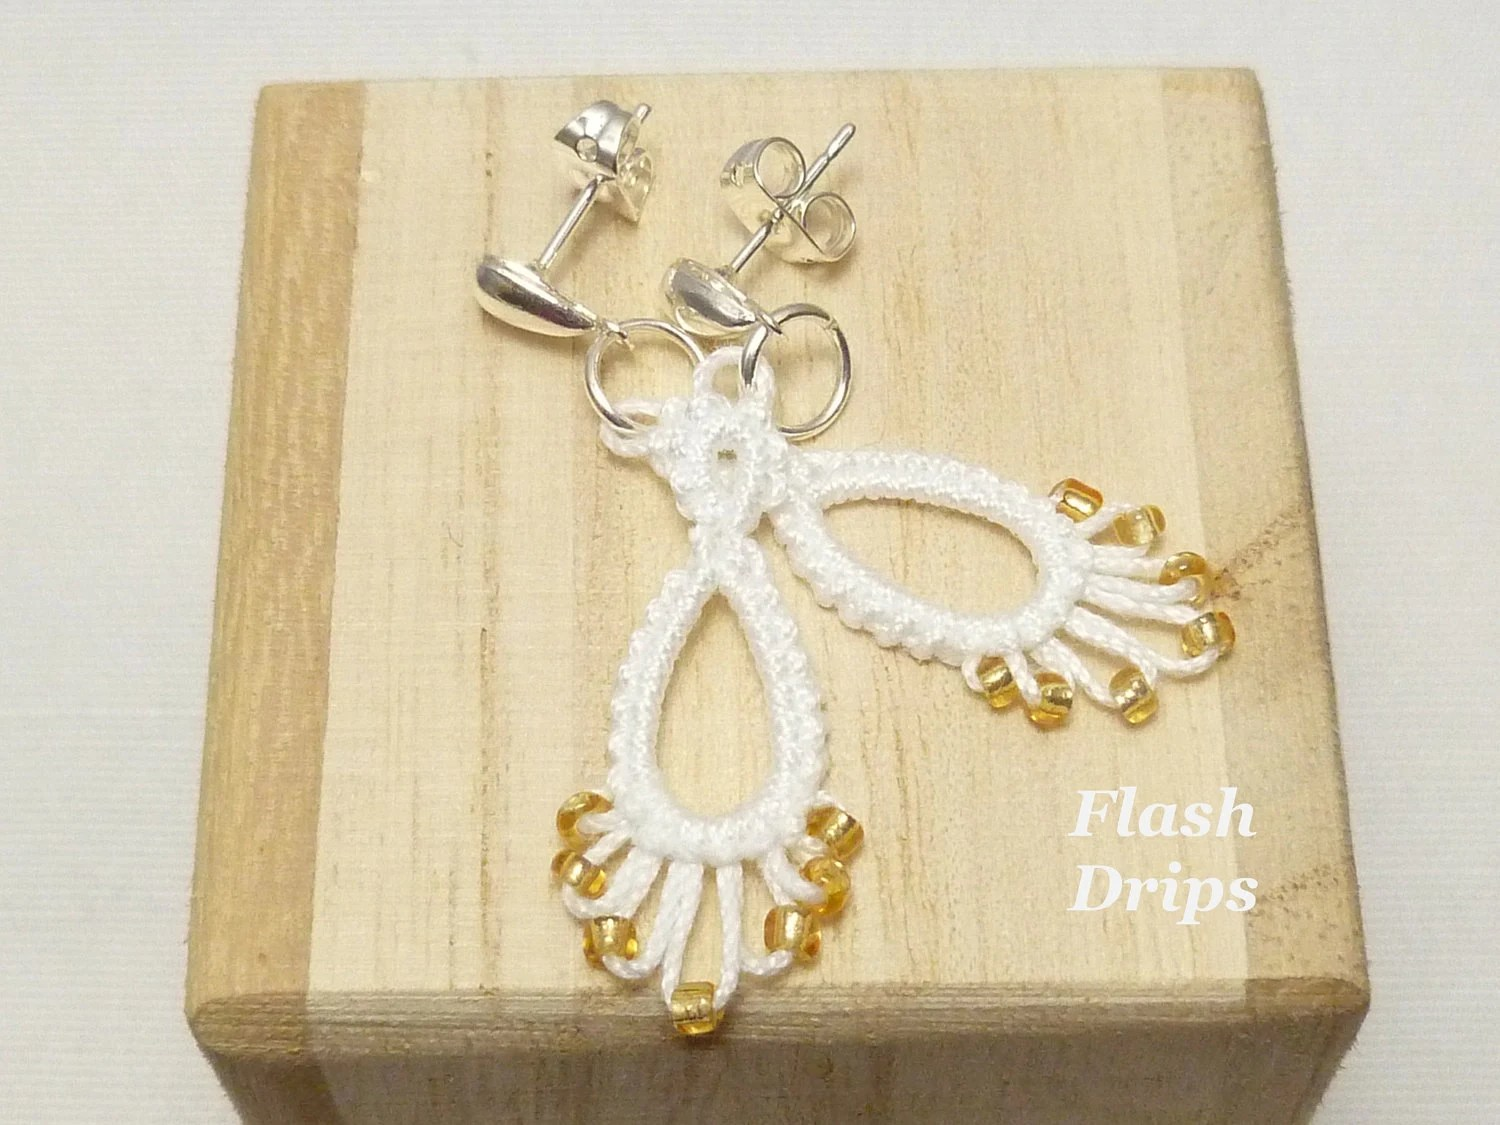 Tatted Lace Earrings in white with gold glass beads -Flash Drips